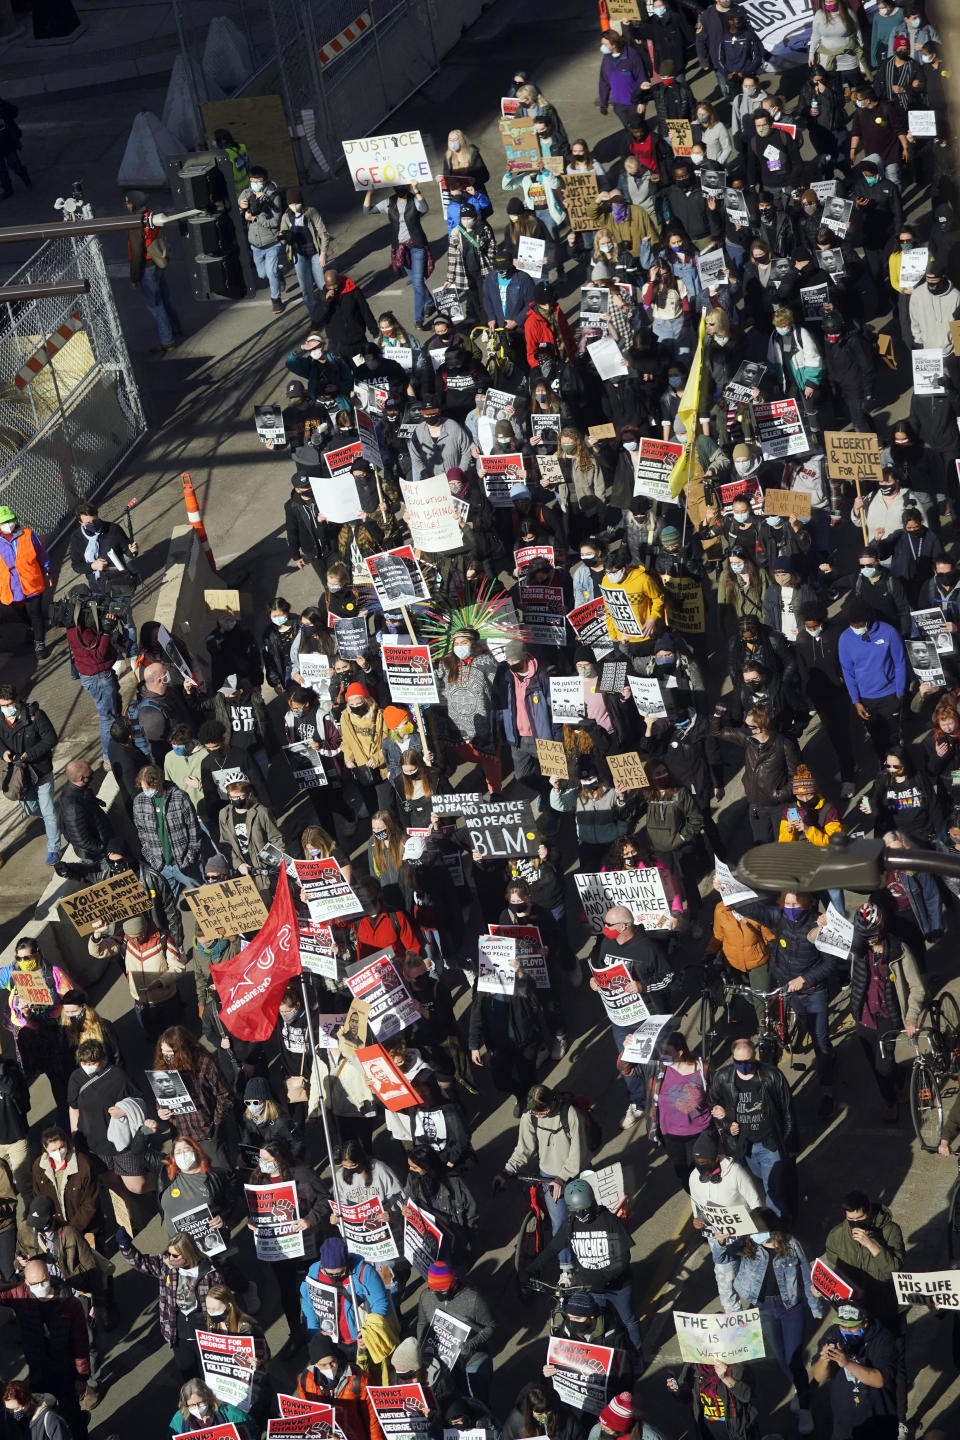 Hundreds of demonstrators march through Minneapolis following protests near the Hennepin County Government Center, Monday, March 8, 2021, in Minneapolis where the trial for former Minneapolis police officer Derek Chauvin began with jury selection. Chauvin is charged with murder in the death of George Floyd during an arrest last May in Minneapolis. (AP Photo/Jim Mone)